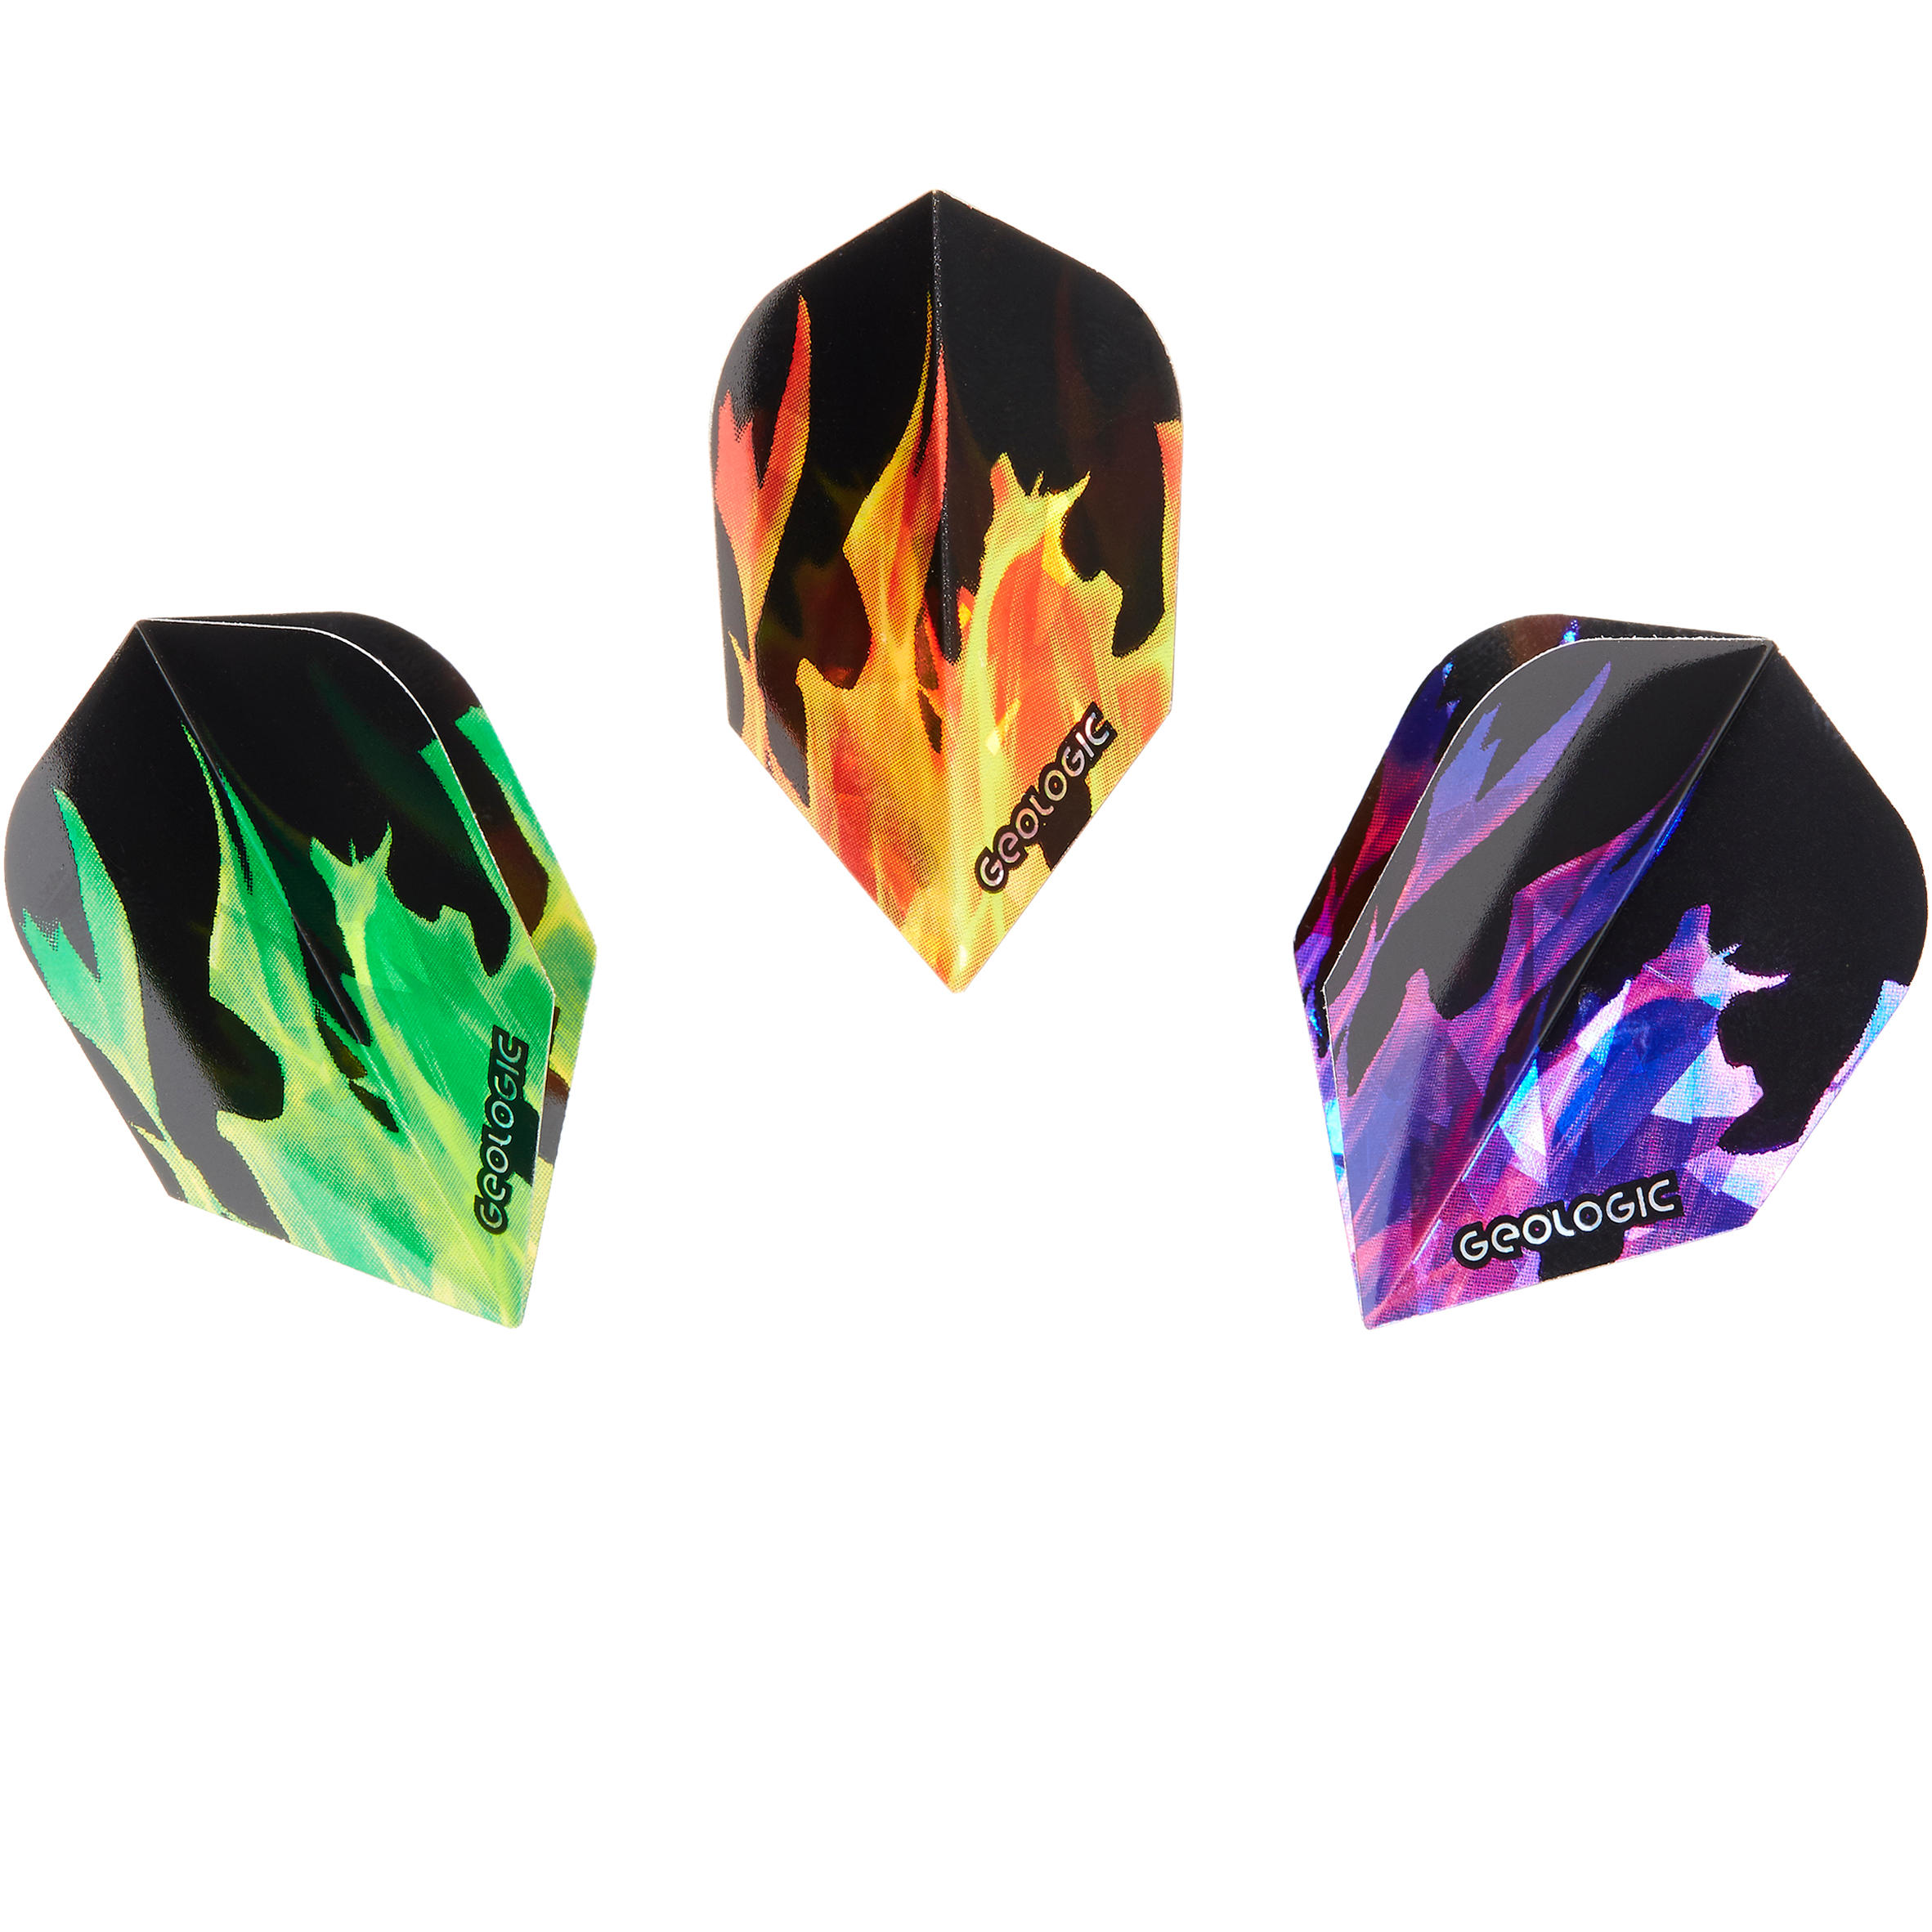 Canaveral Flames 3-Pack Set of 3 Standard Flights